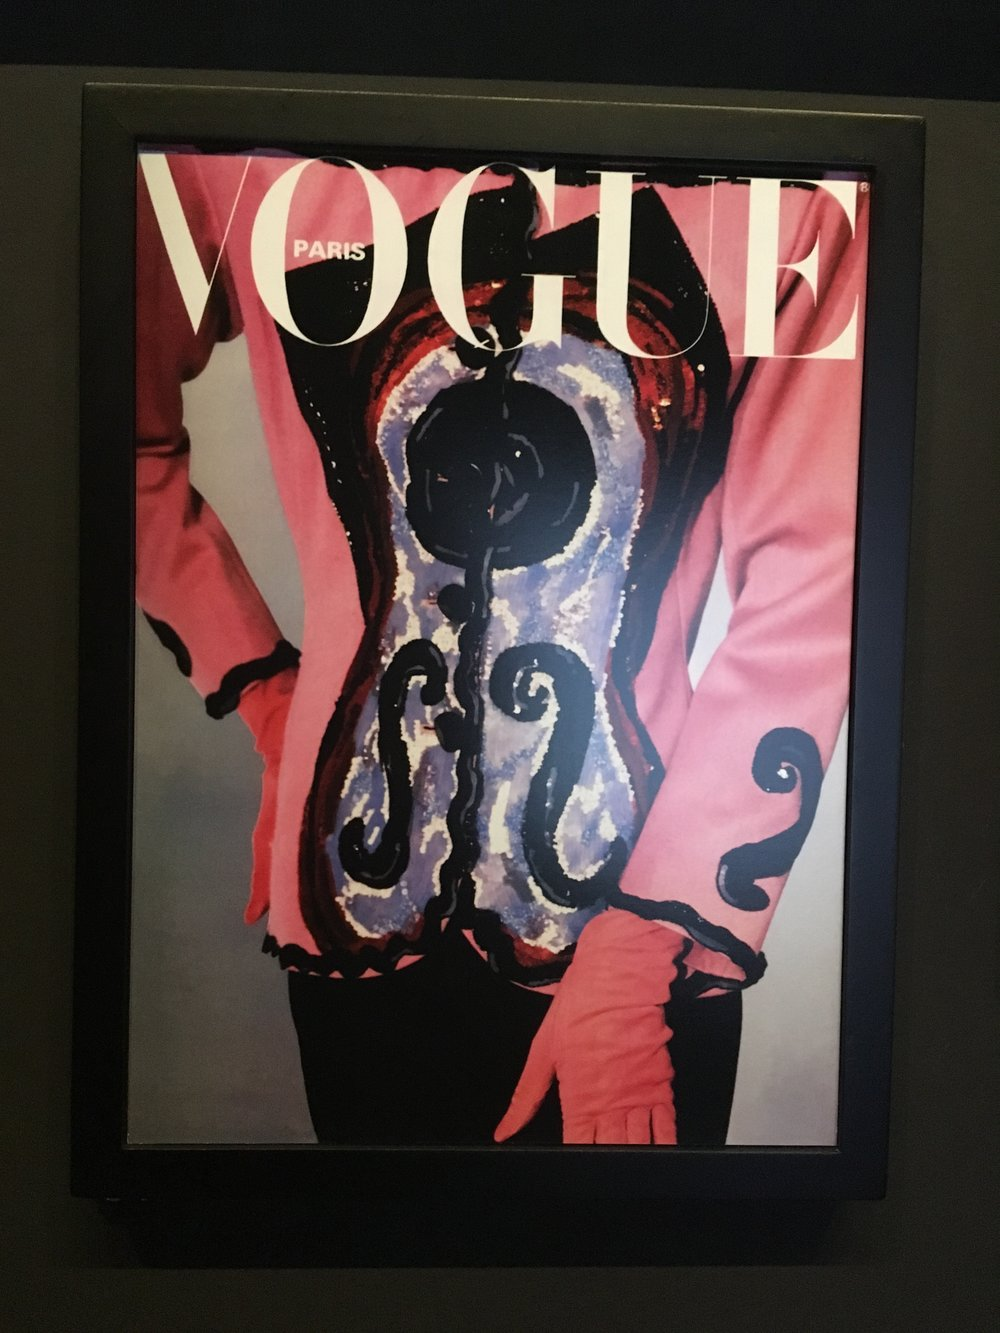 Michael Roberts' cover for  Vogue  Paris, 1988, featuring YSL's cubist tribute to Picasso